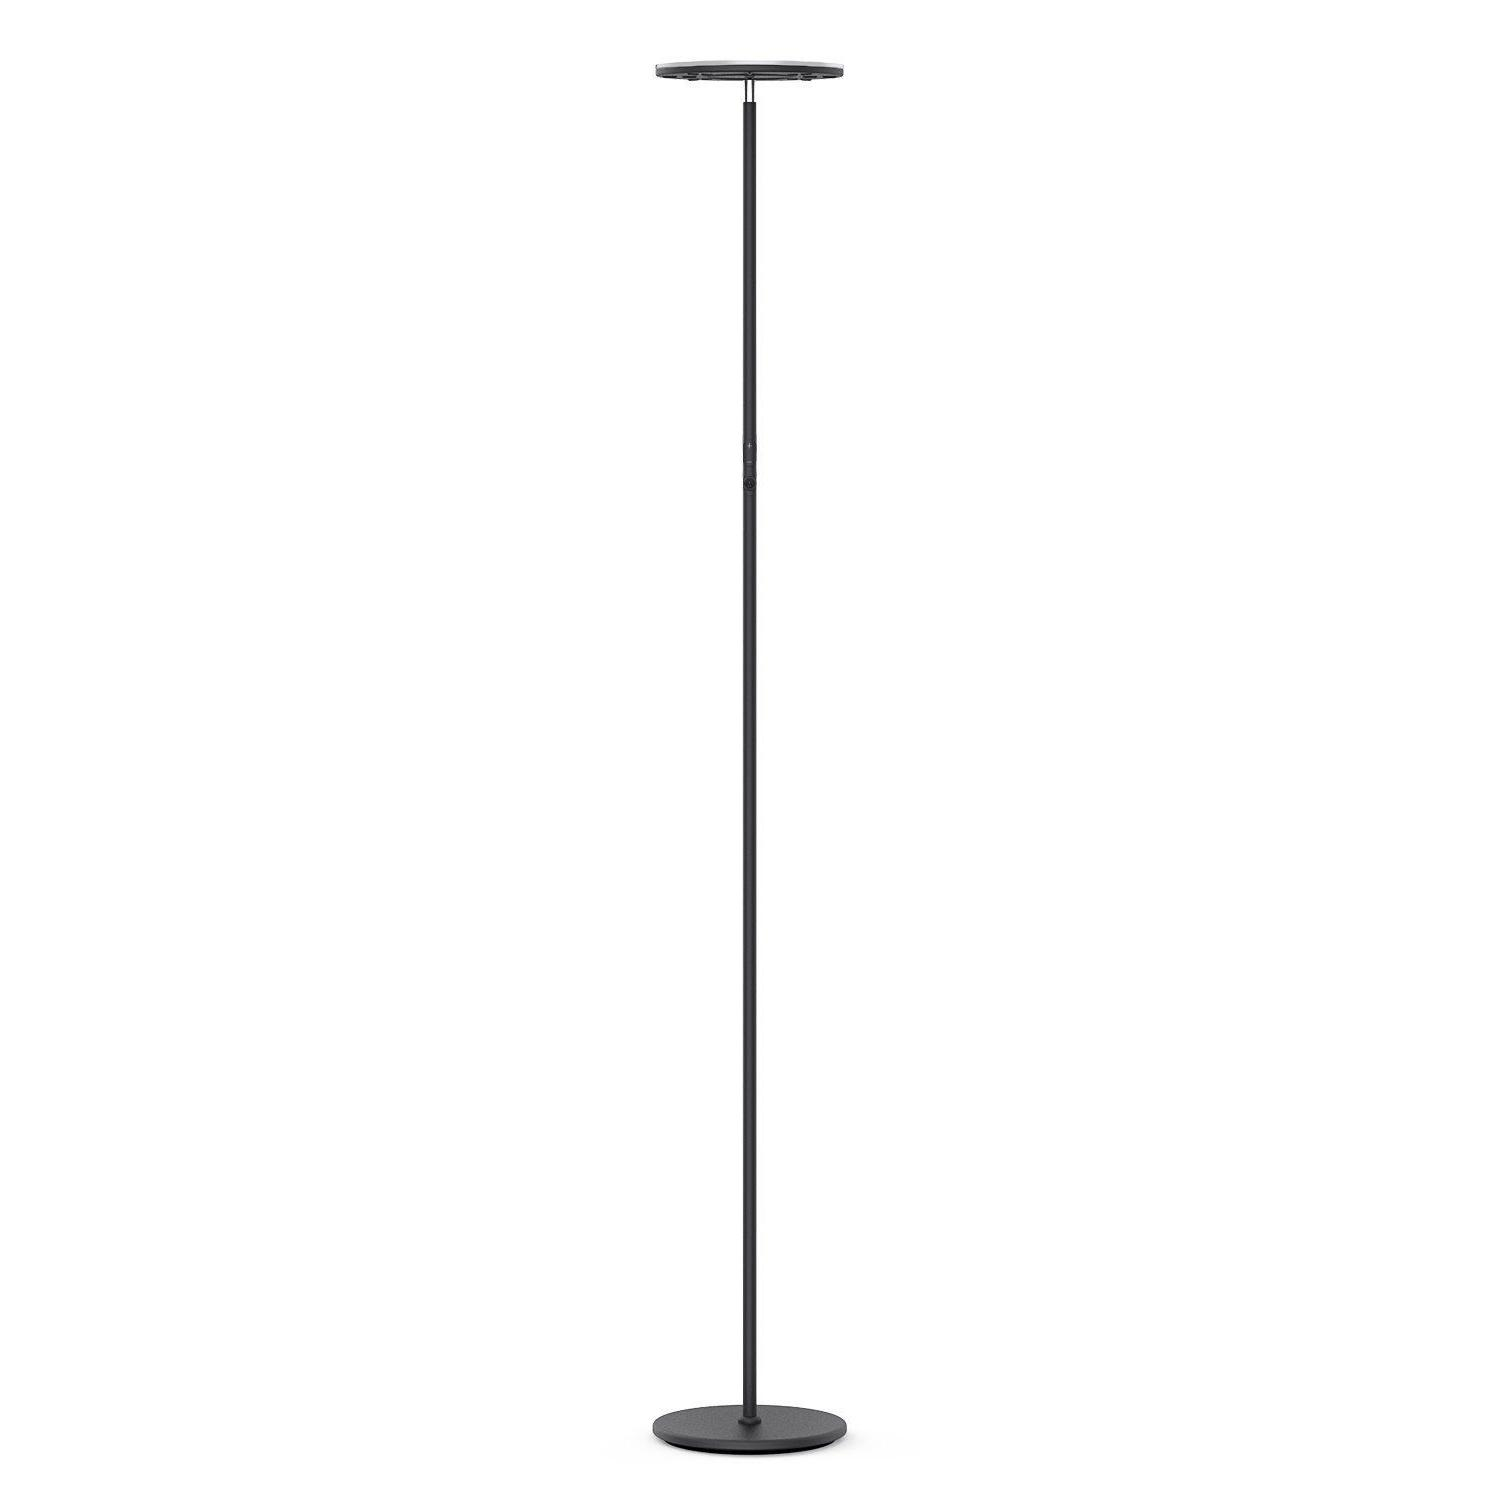 Vacnite 36W LED Torchiere Floor Lamp Energy Saving Dimmable